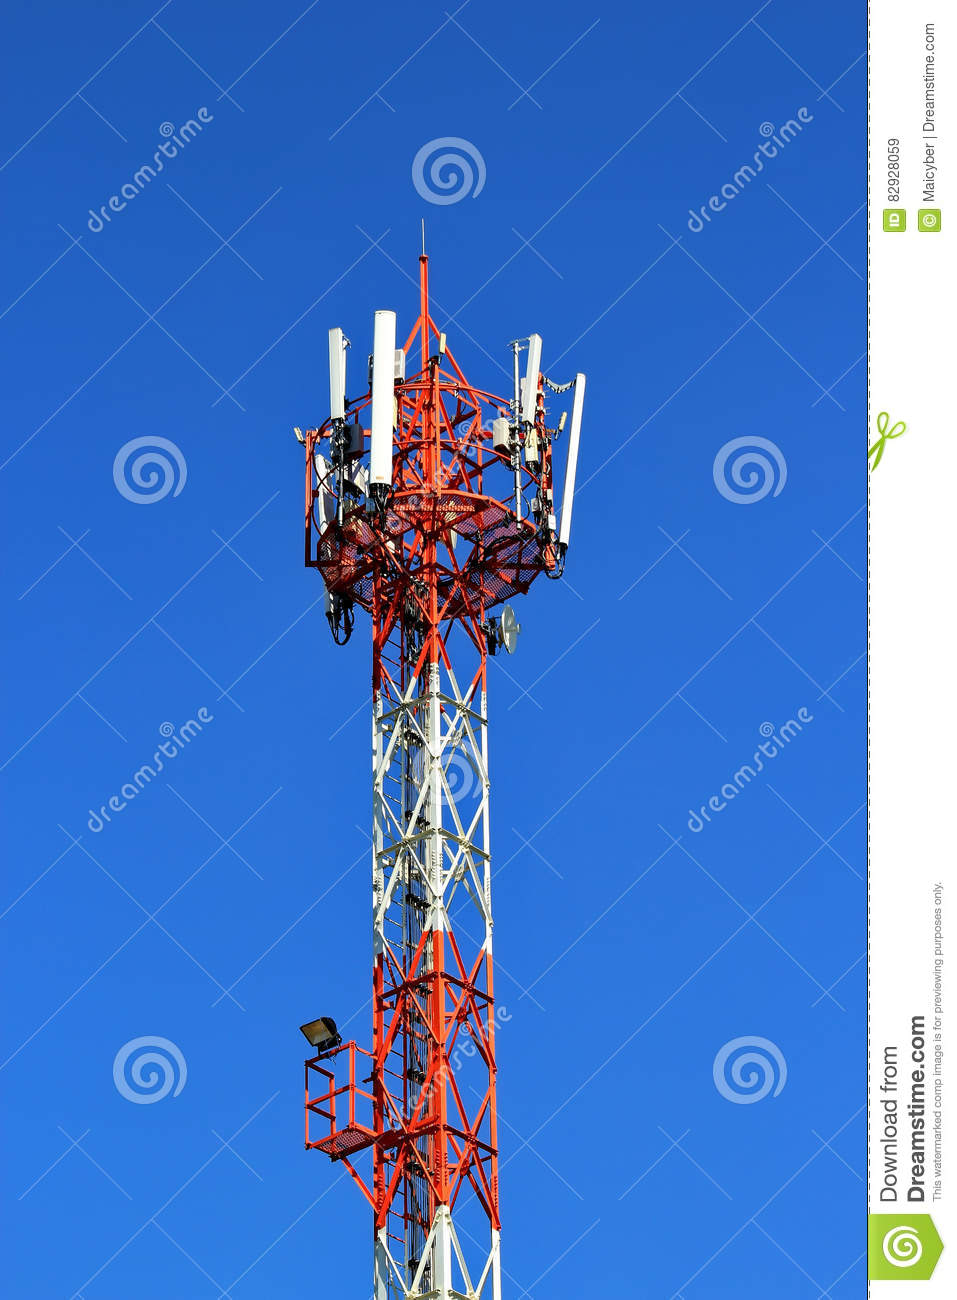 4G Cell site base station stock image  Image of bandwidth